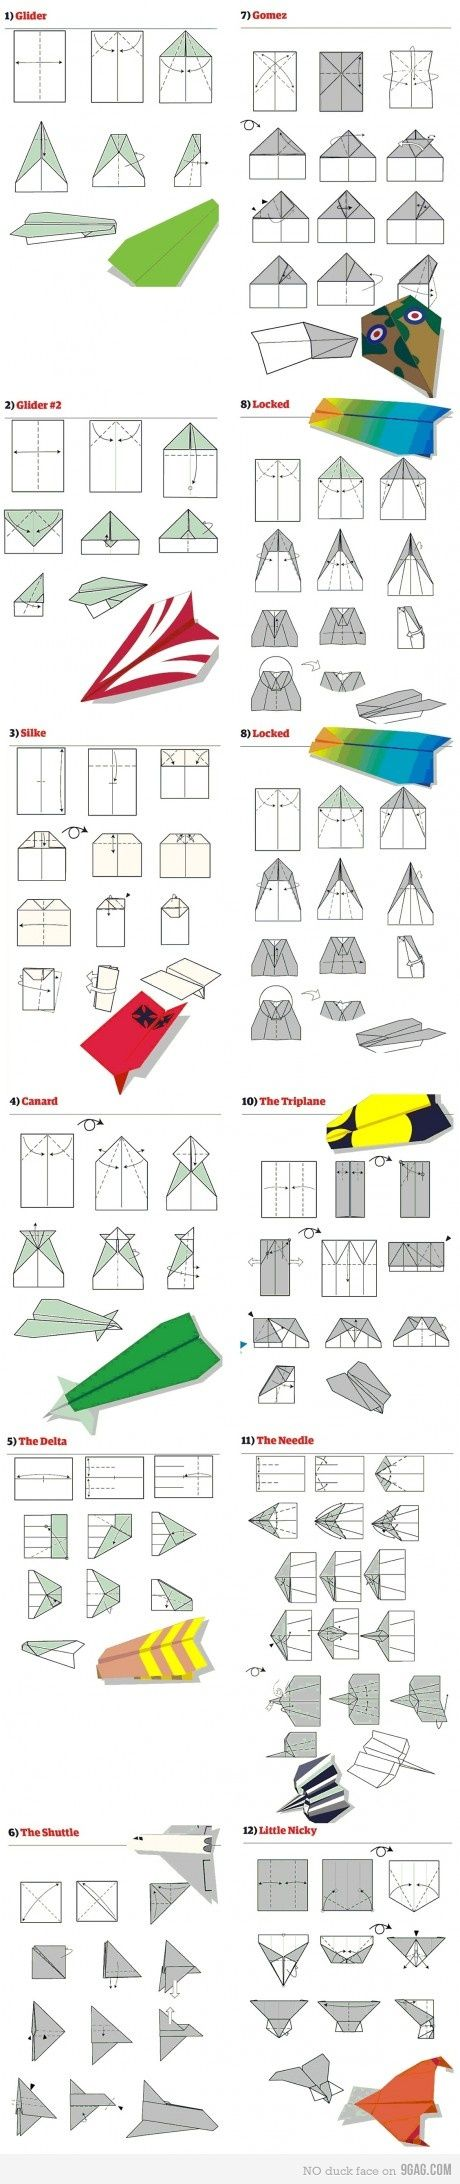 about tracey black pinterest aeroplanes crafts and activities